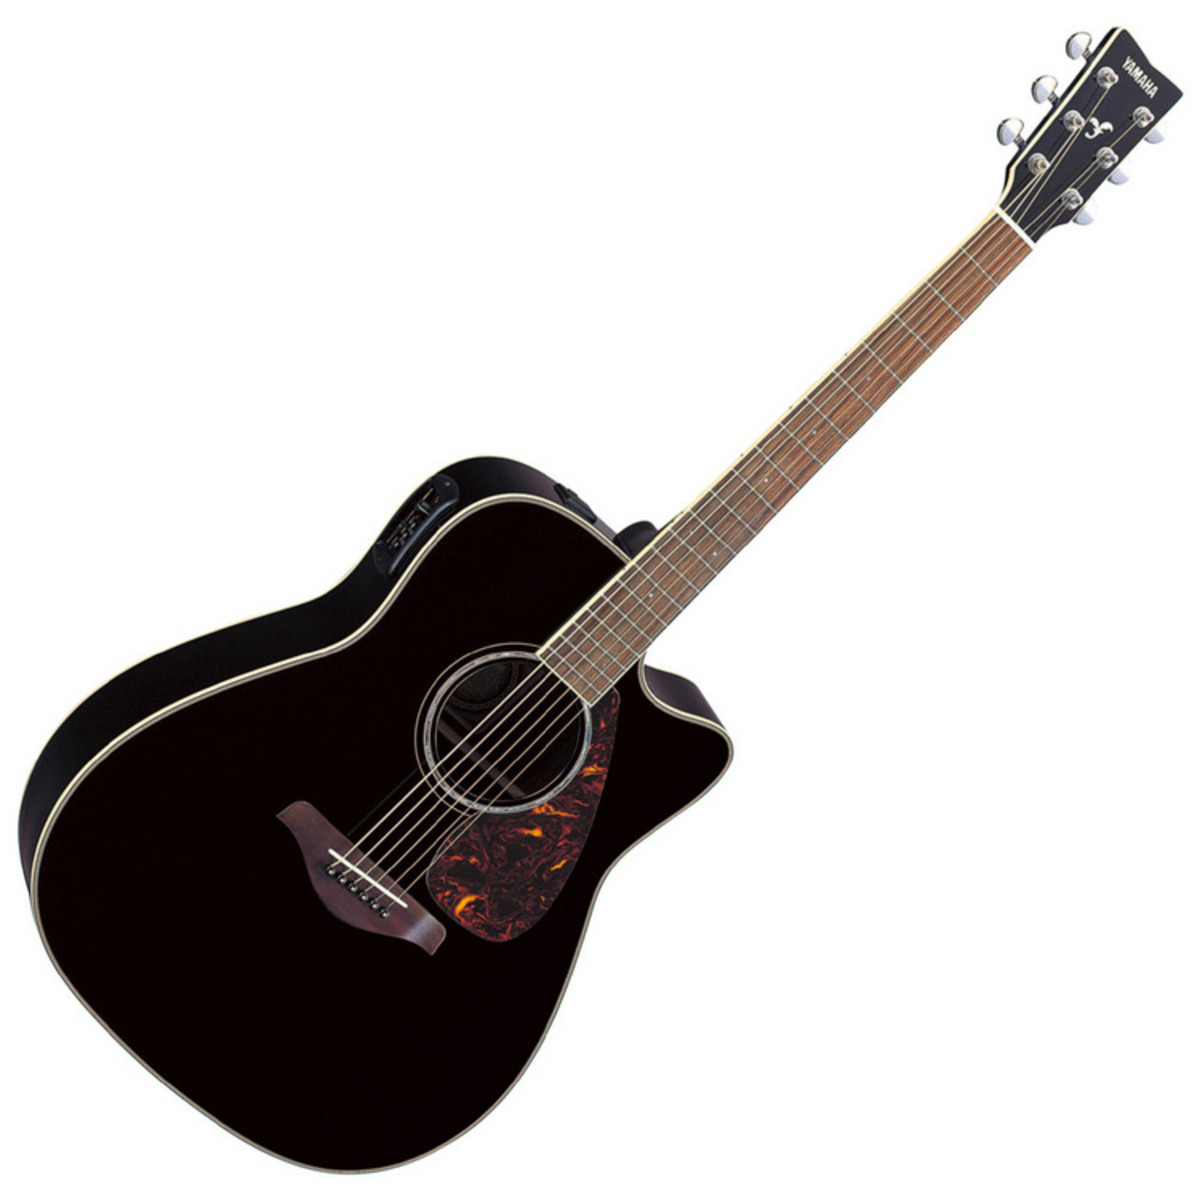 yamaha fgx730sca guitare electro acoustique noir. Black Bedroom Furniture Sets. Home Design Ideas